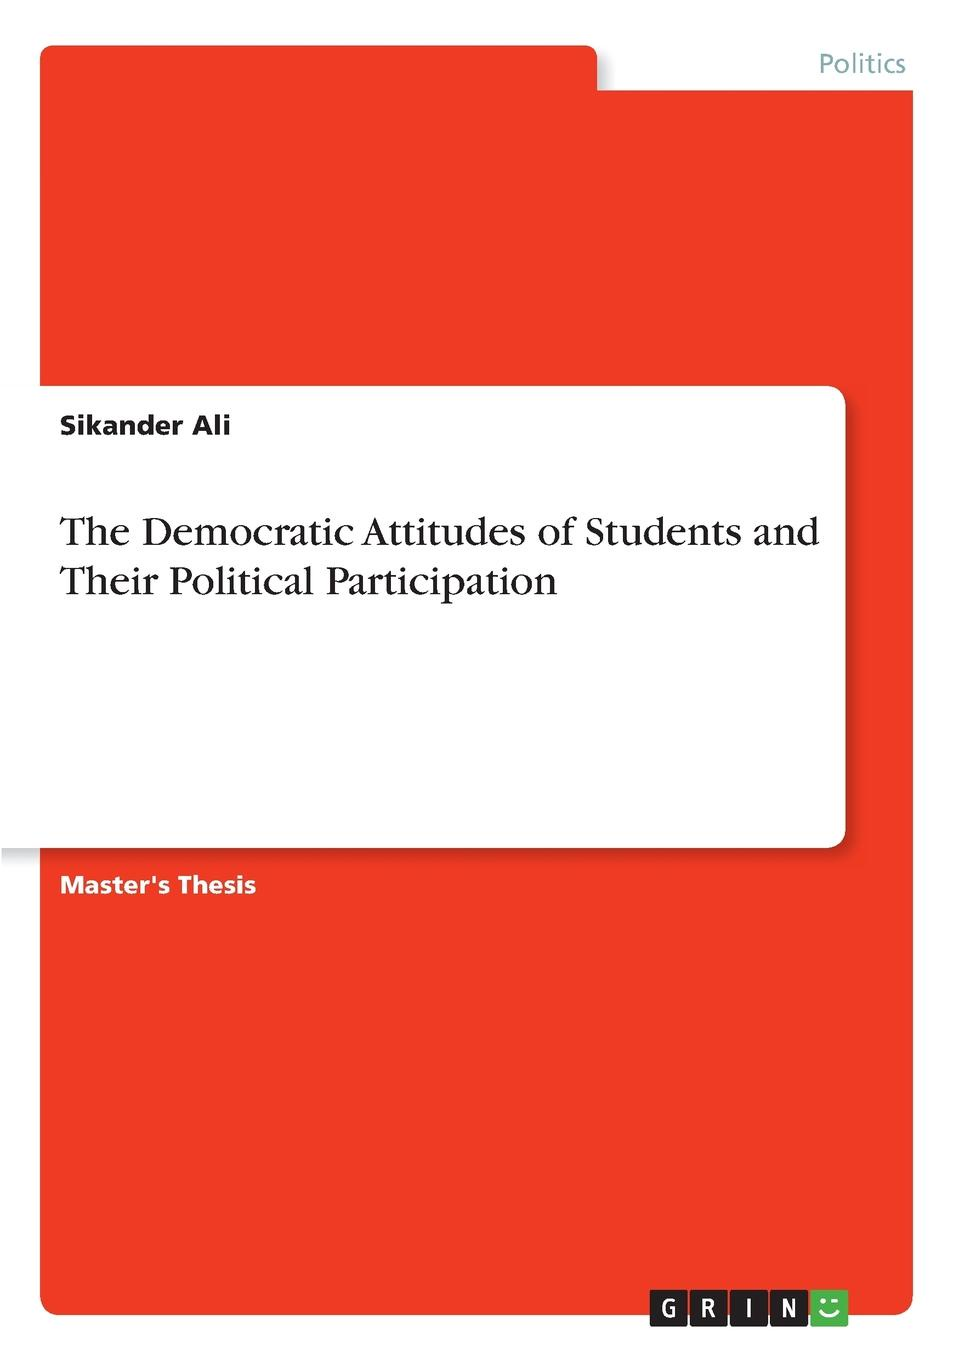 Sikander Ali The Democratic Attitudes of Students and Their Political Participation retinopathy among undiagnosed patients of pakistan